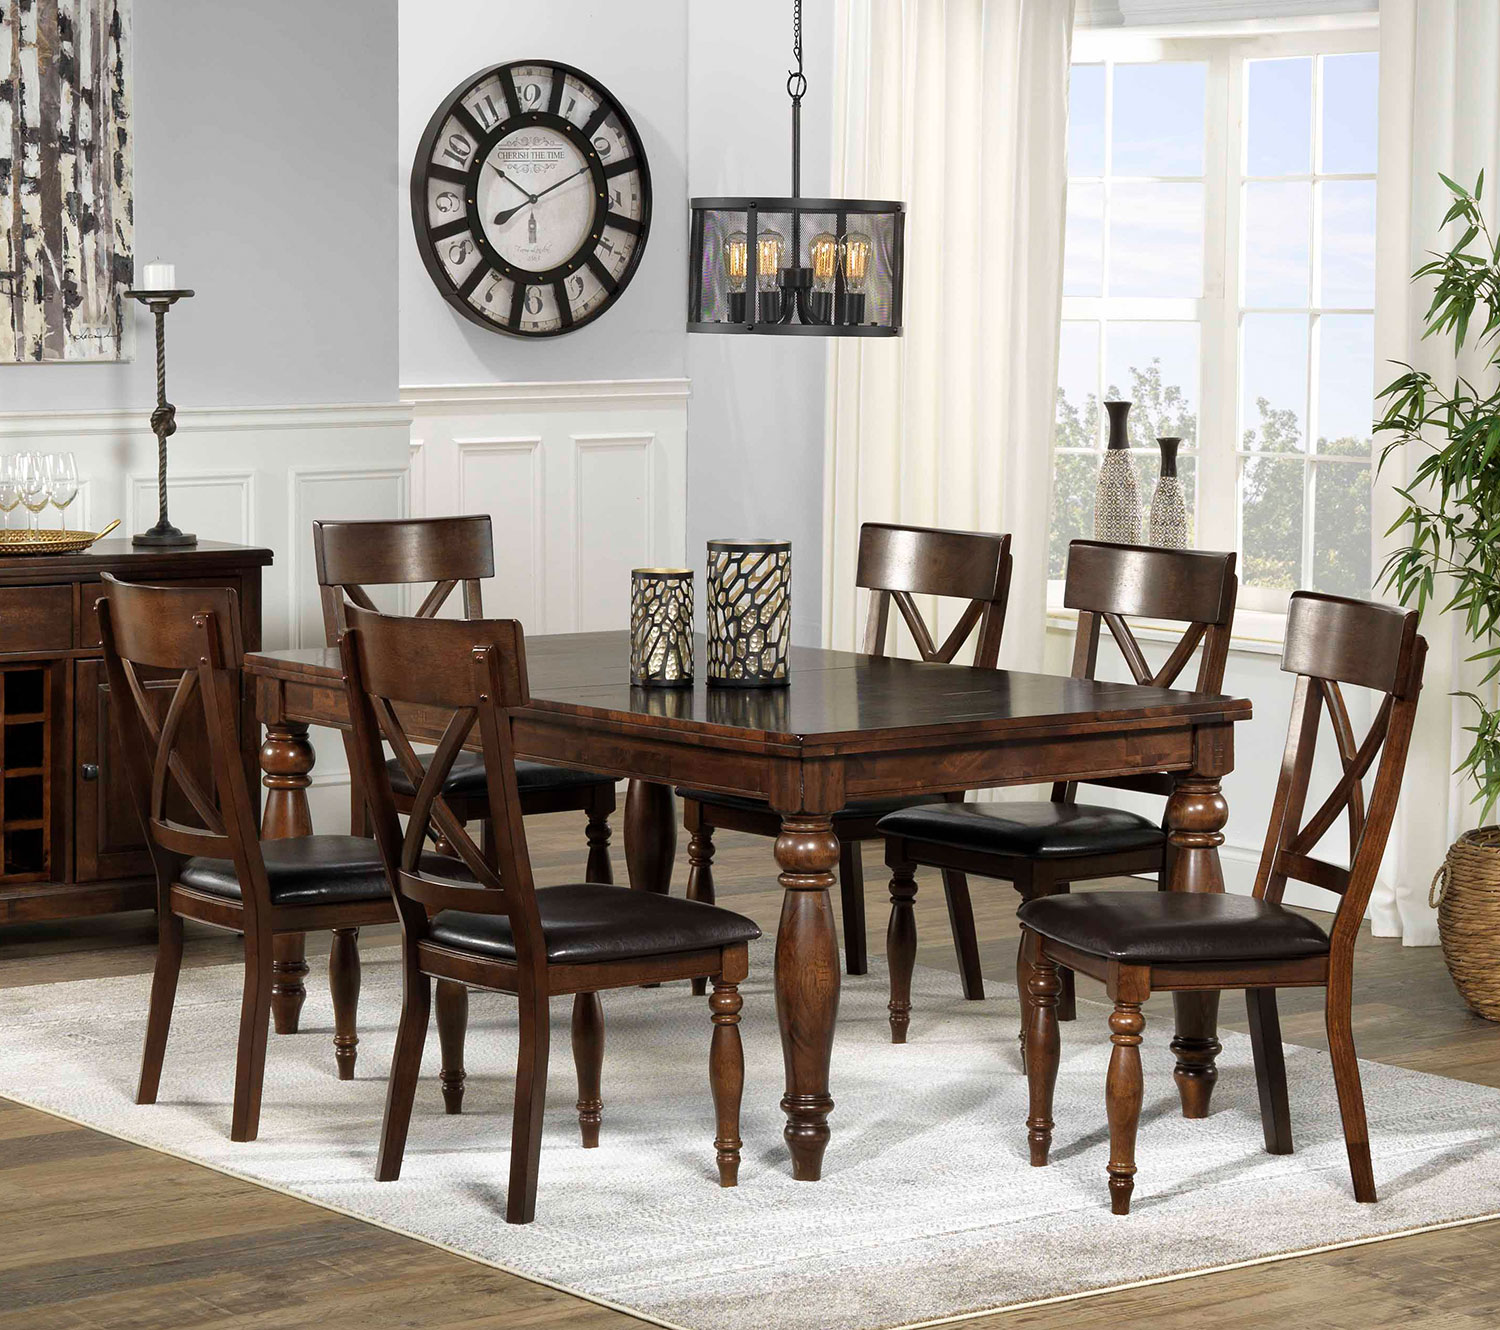 Dining Room Sets: Kingstown 7-Piece Dining Room Set - Chocolate